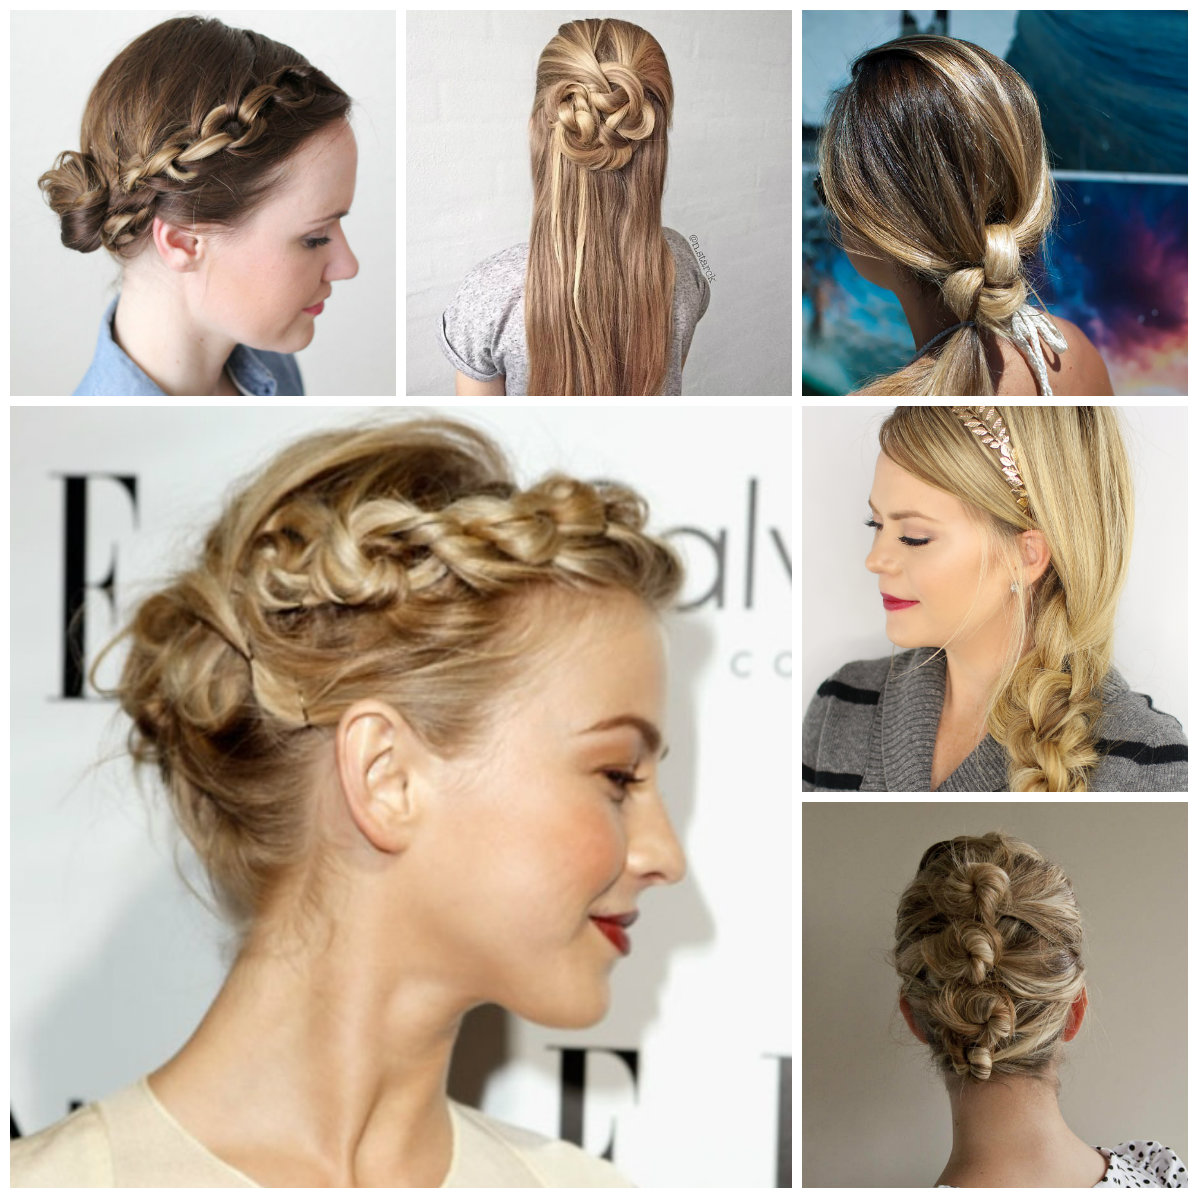 knotted hairstyles 2022